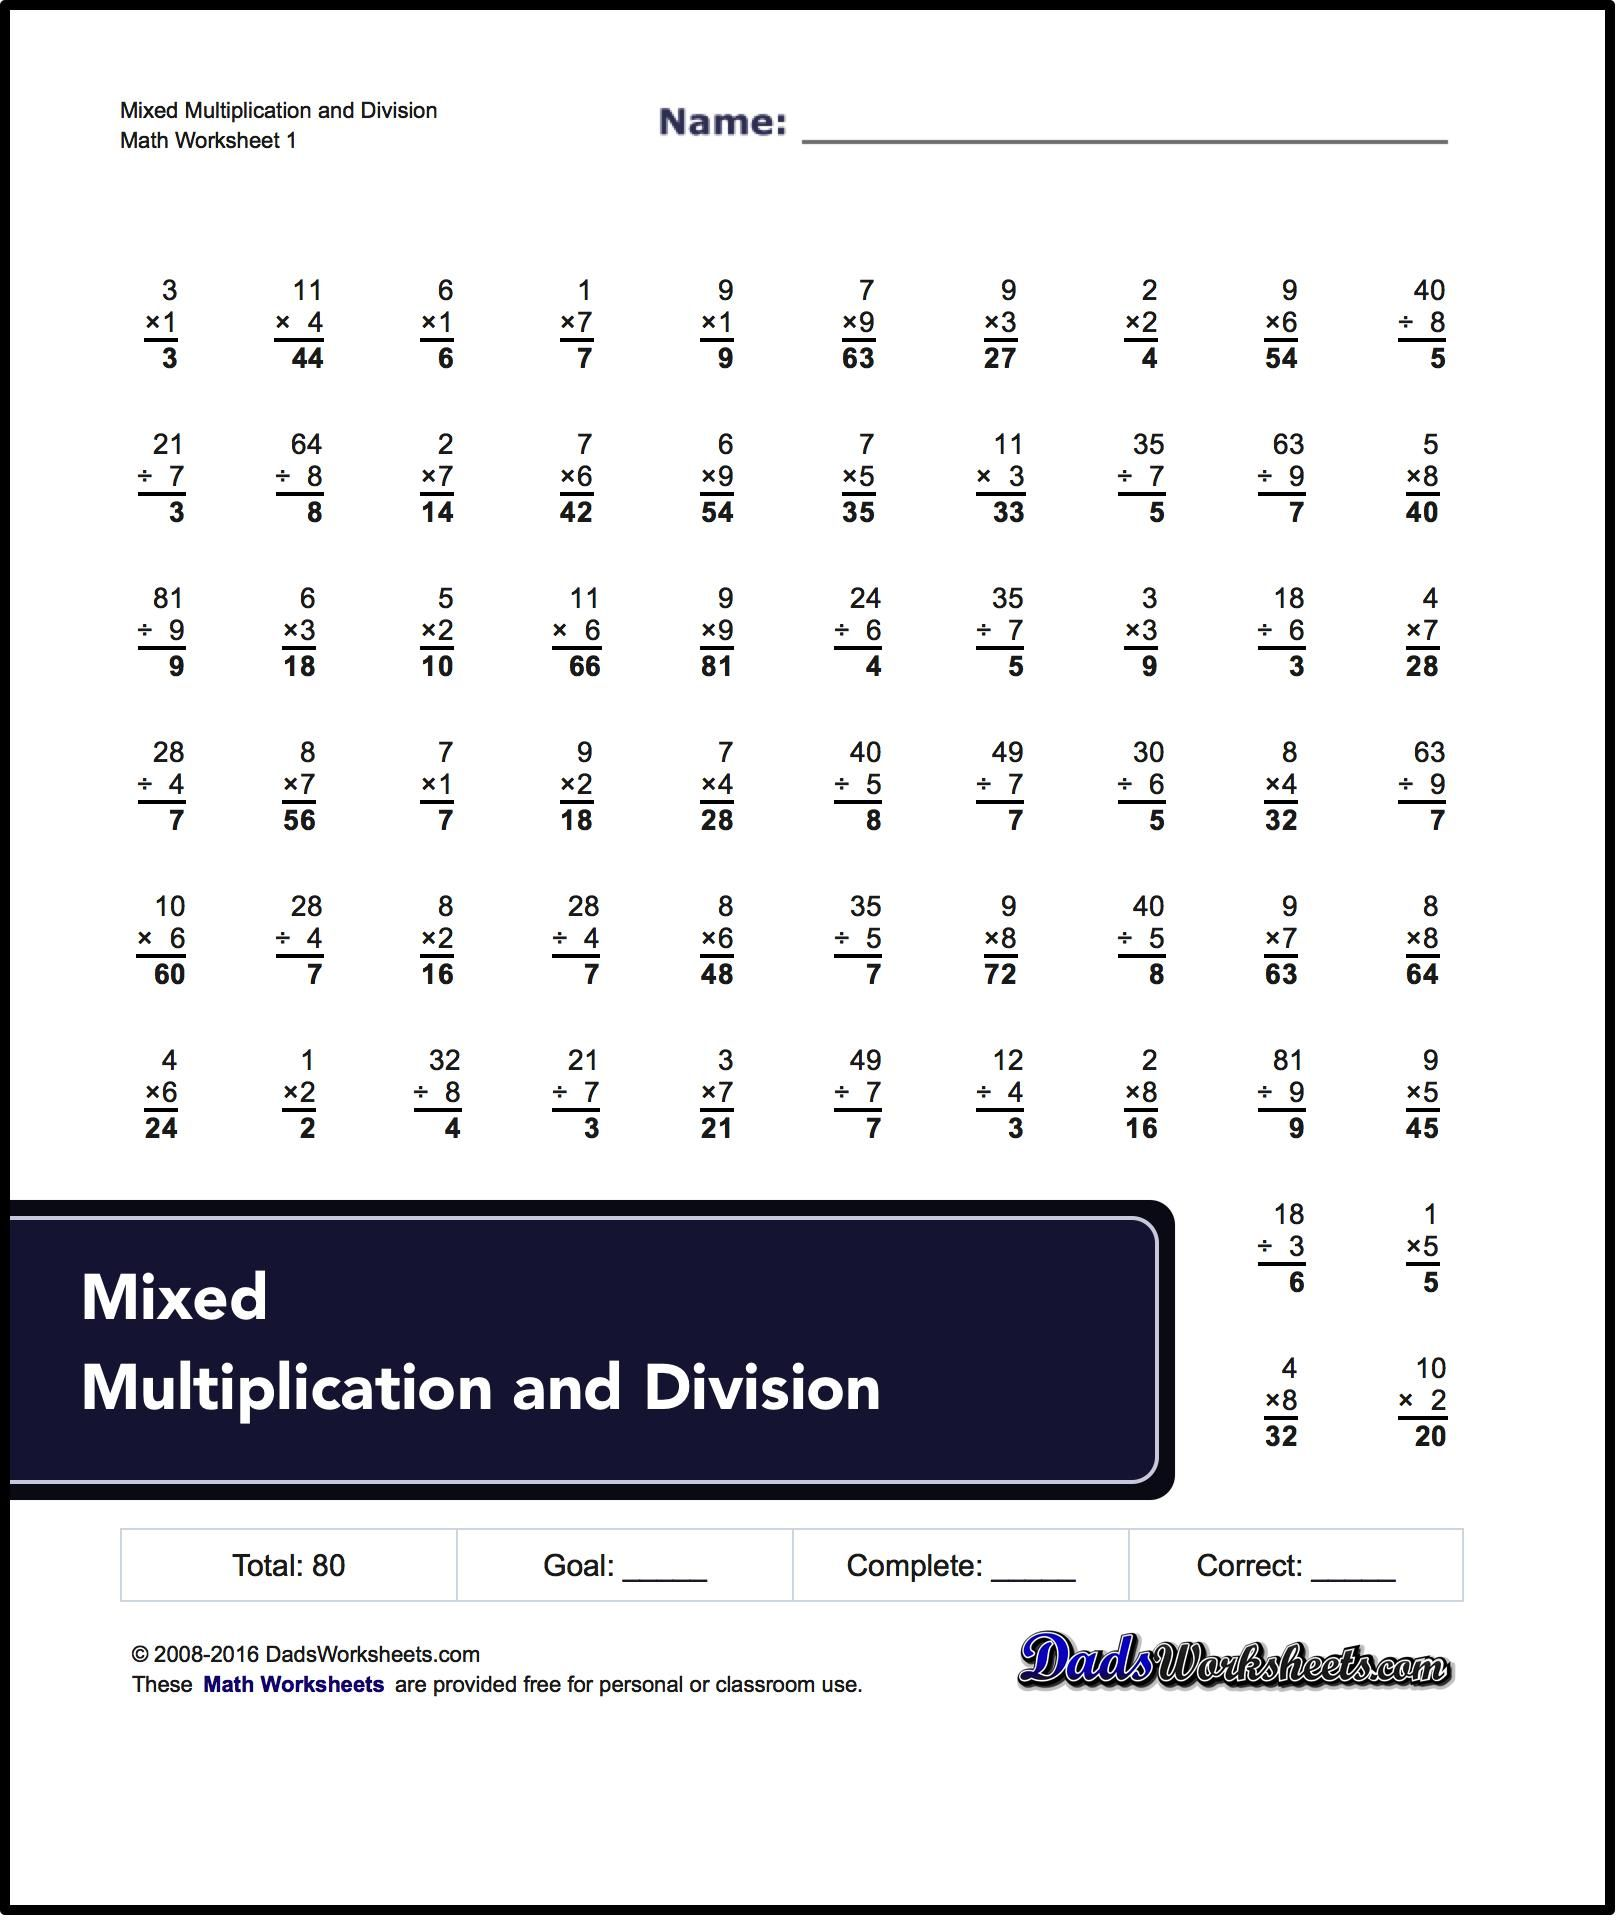 Division Worksheets Mixed Multiplication And Division